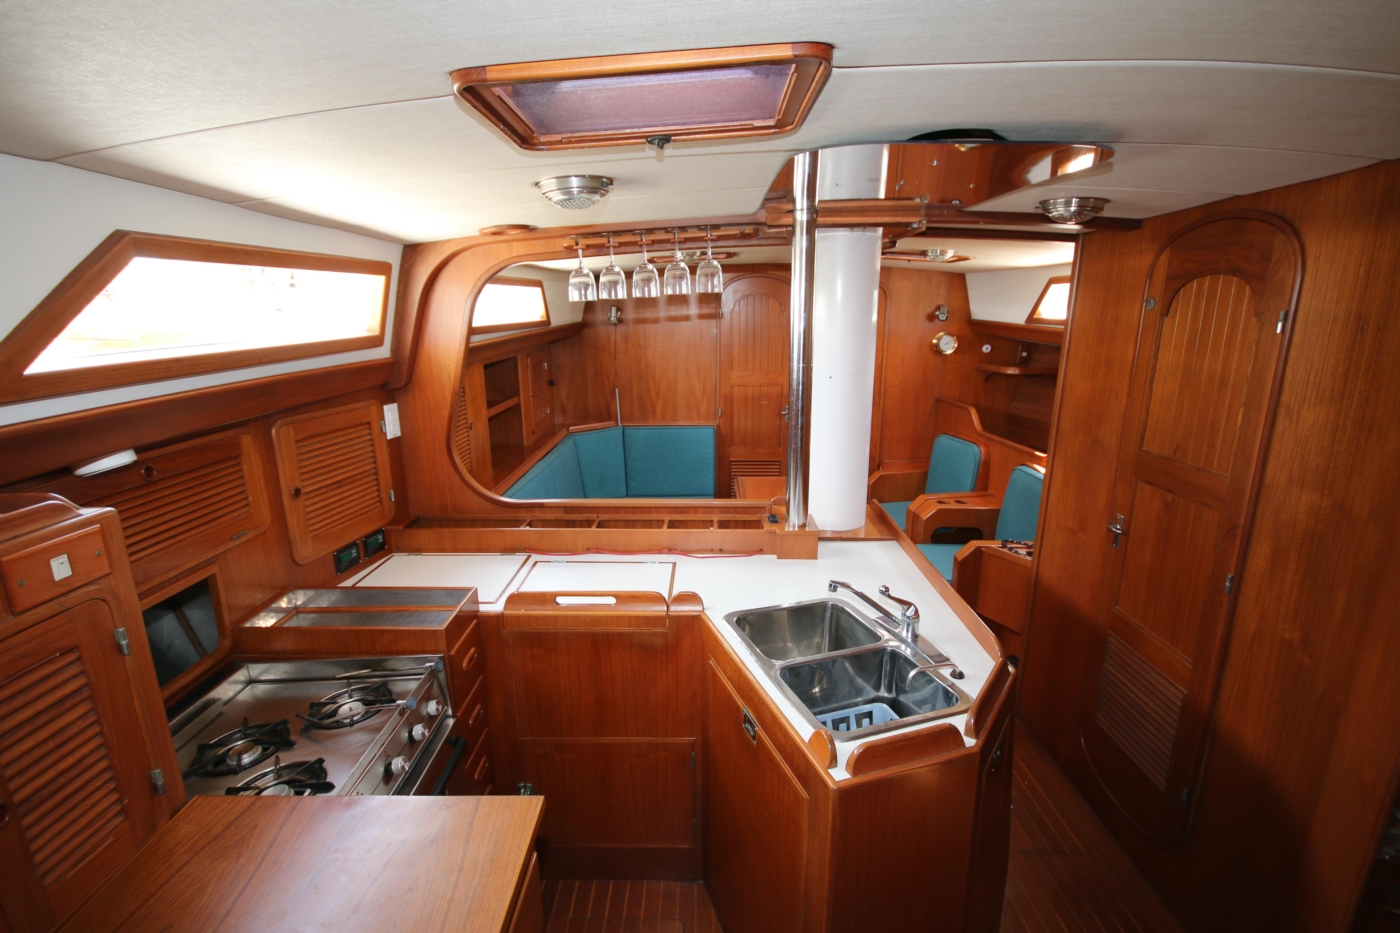 1996 Tanton 45 Offshore, Galley & Salon